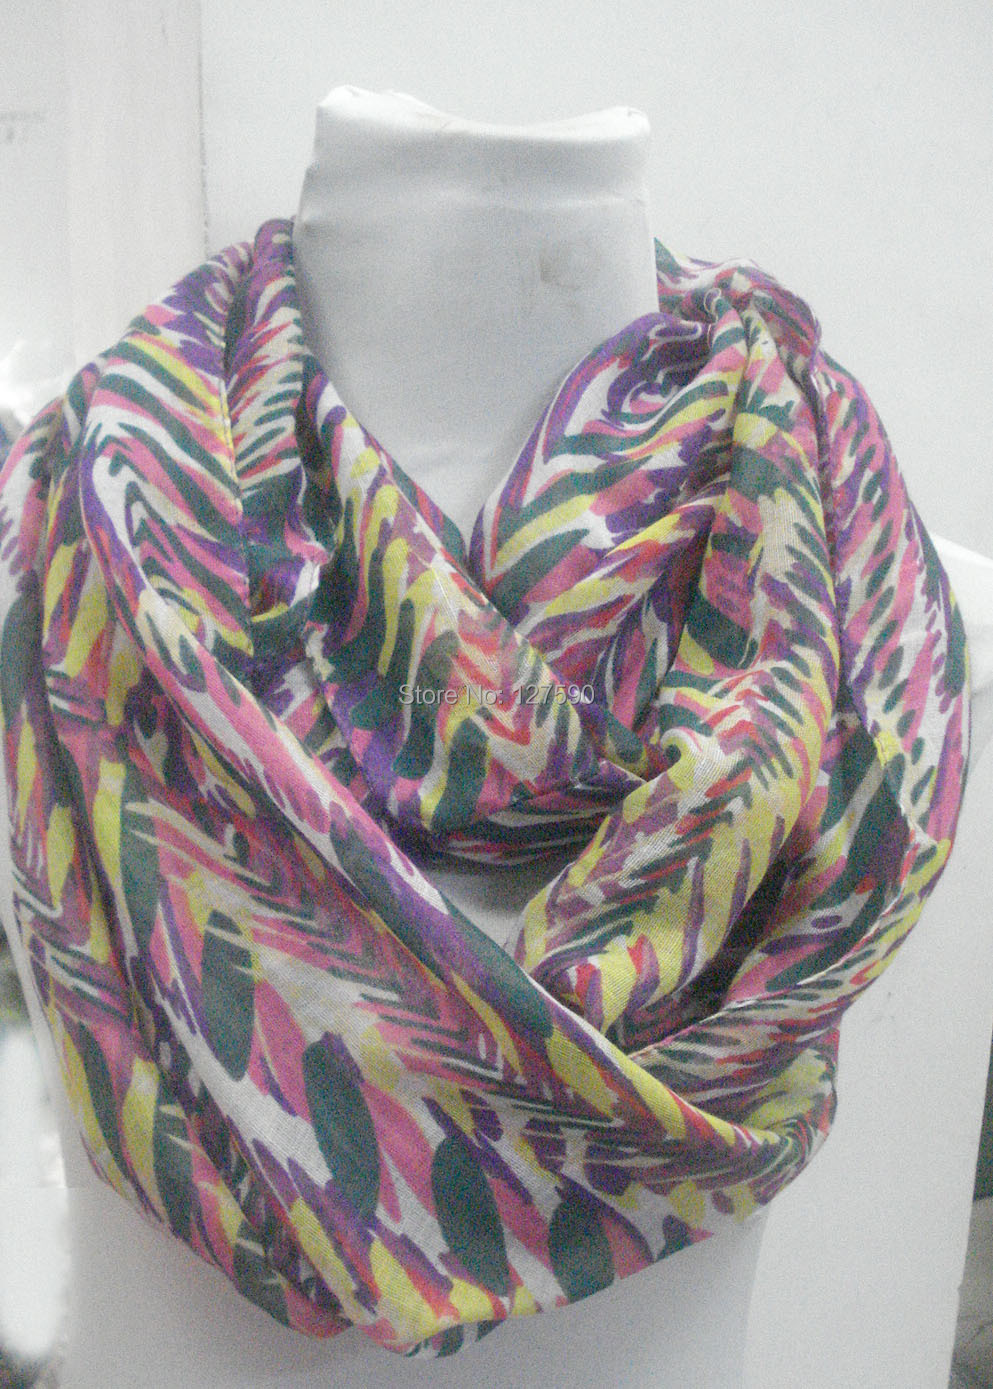 2015 new leaves print infinity scarf leaves loop